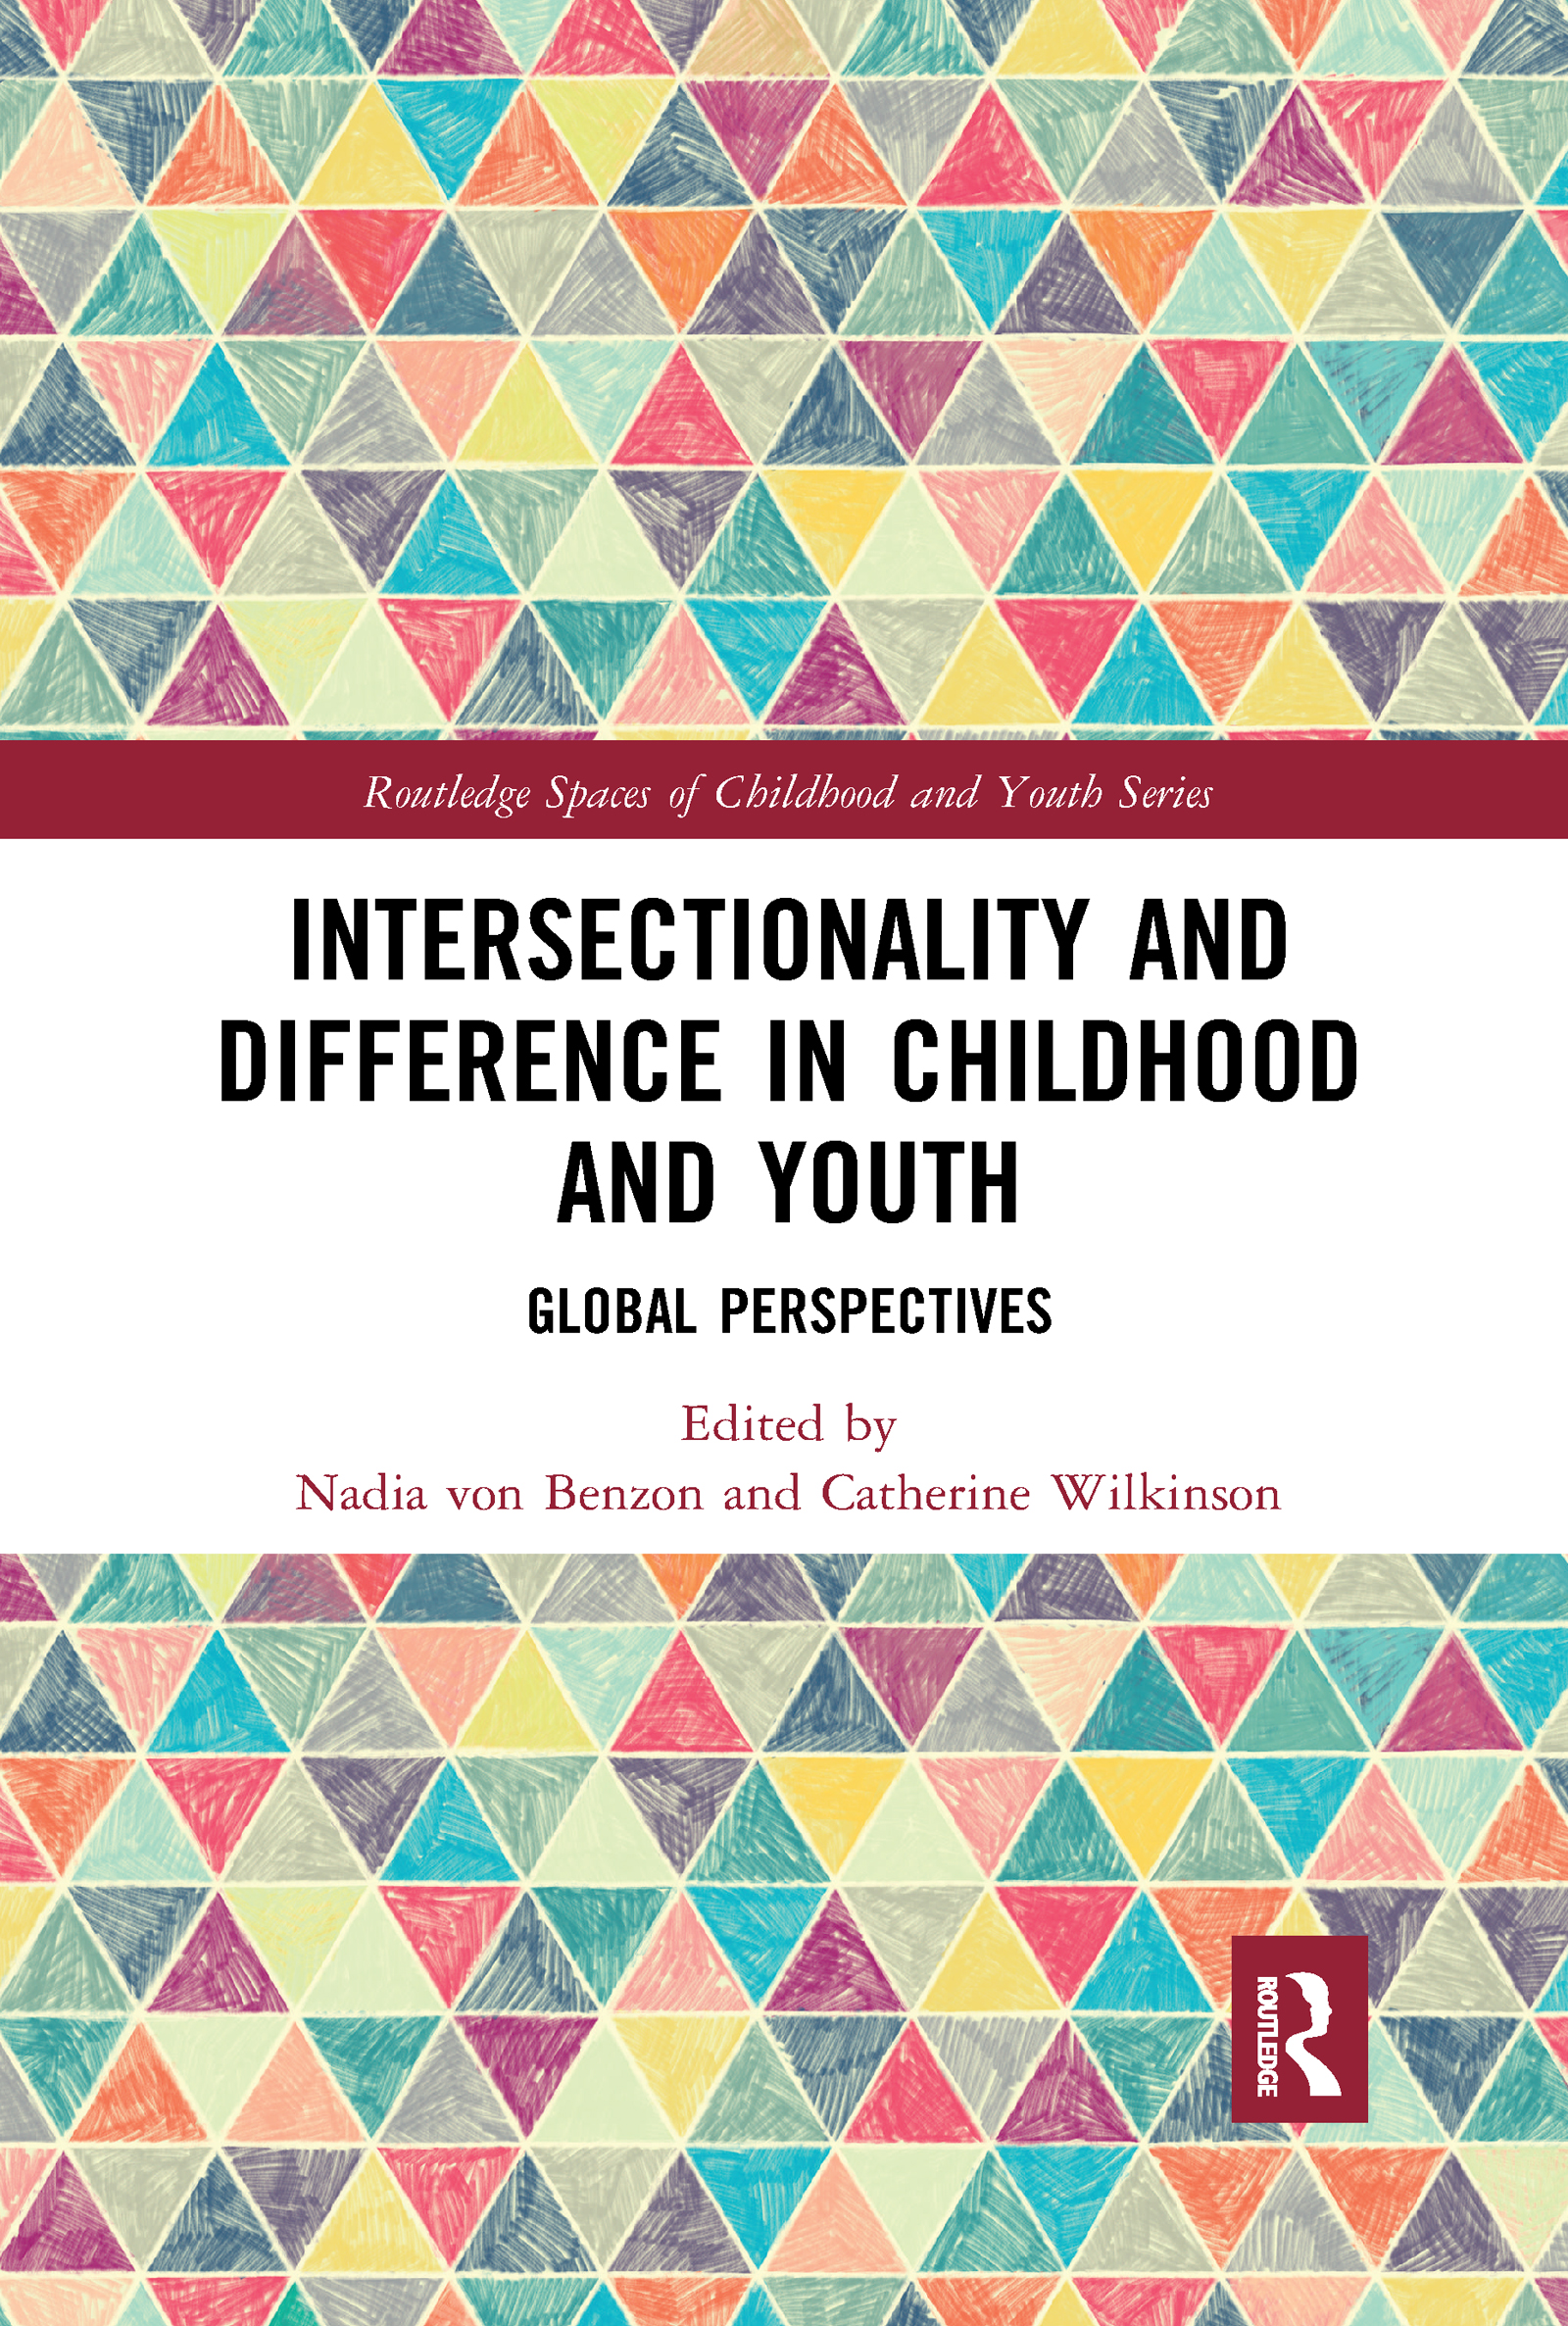 Intersectionality and Difference in Childhood and Youth